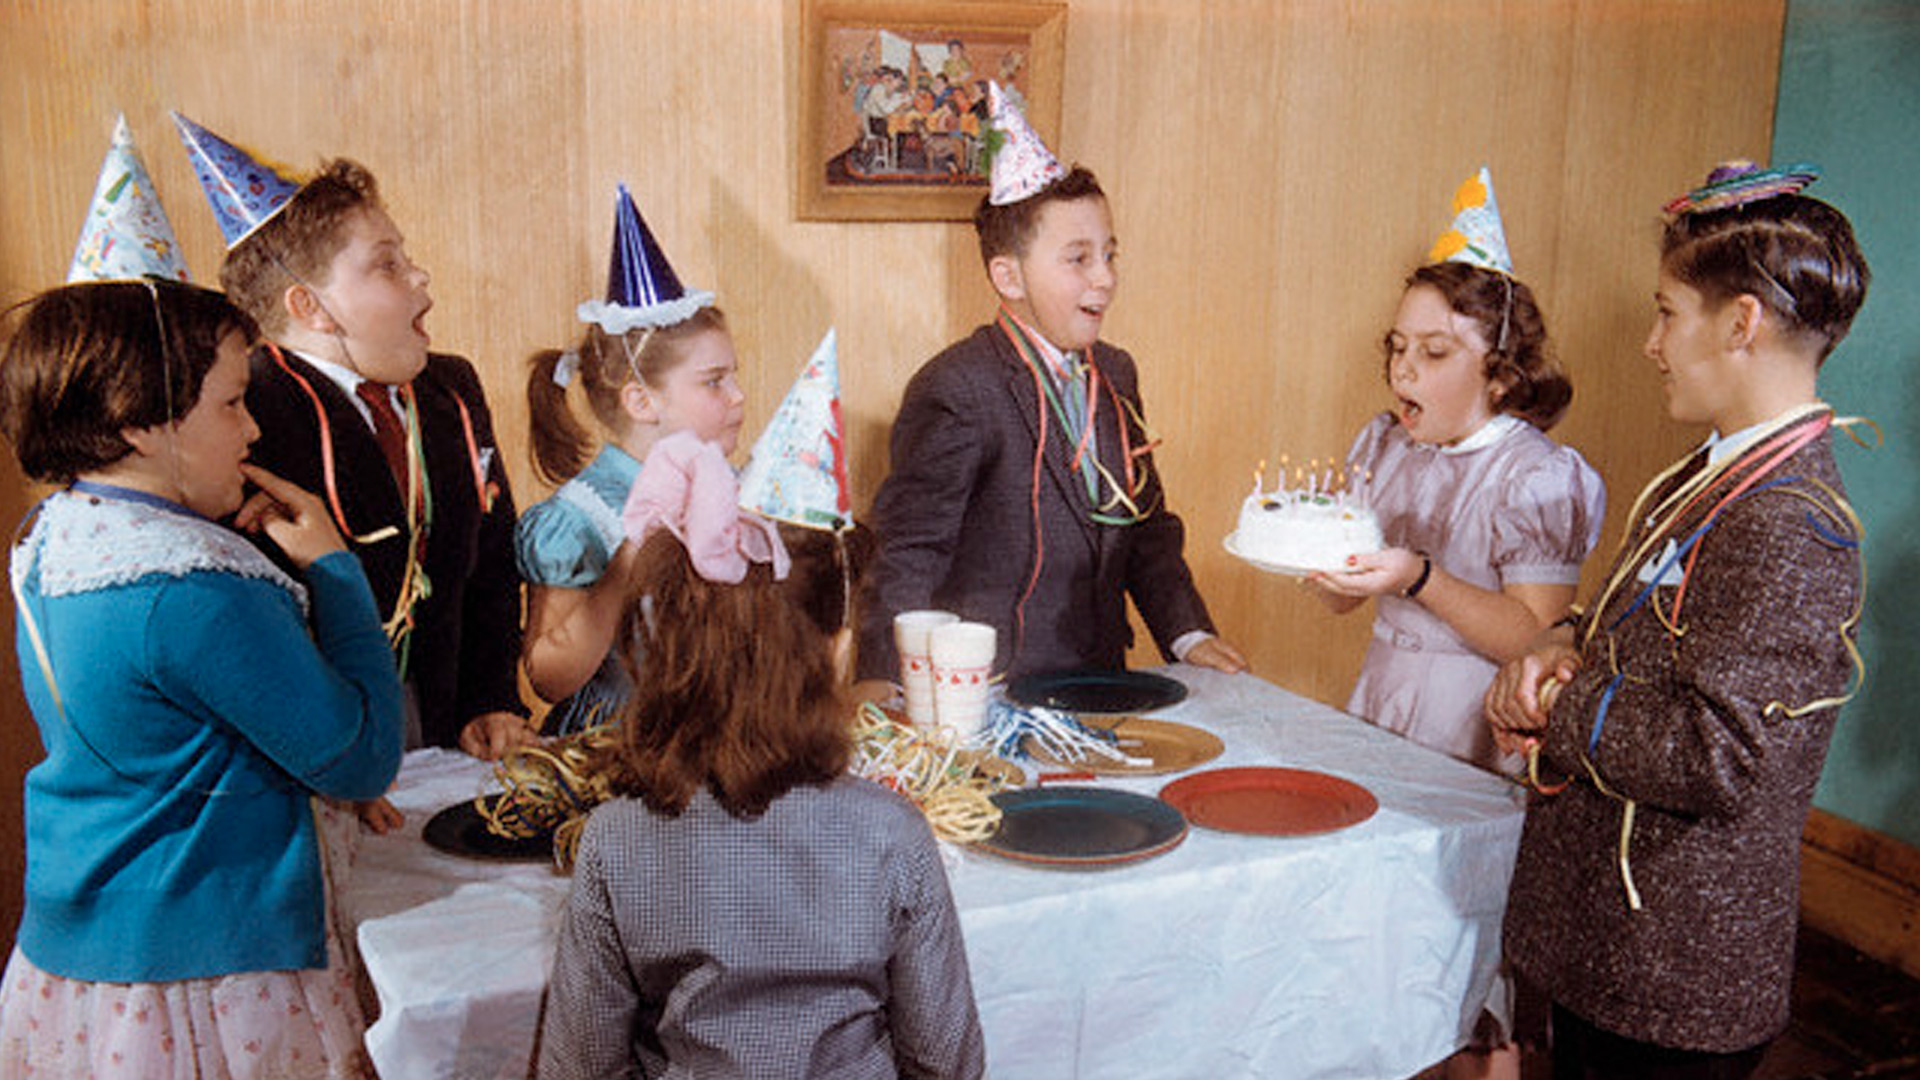 Birthday Parties For Introverts Quiet Revolution - Childrens birthday parties pizza hut